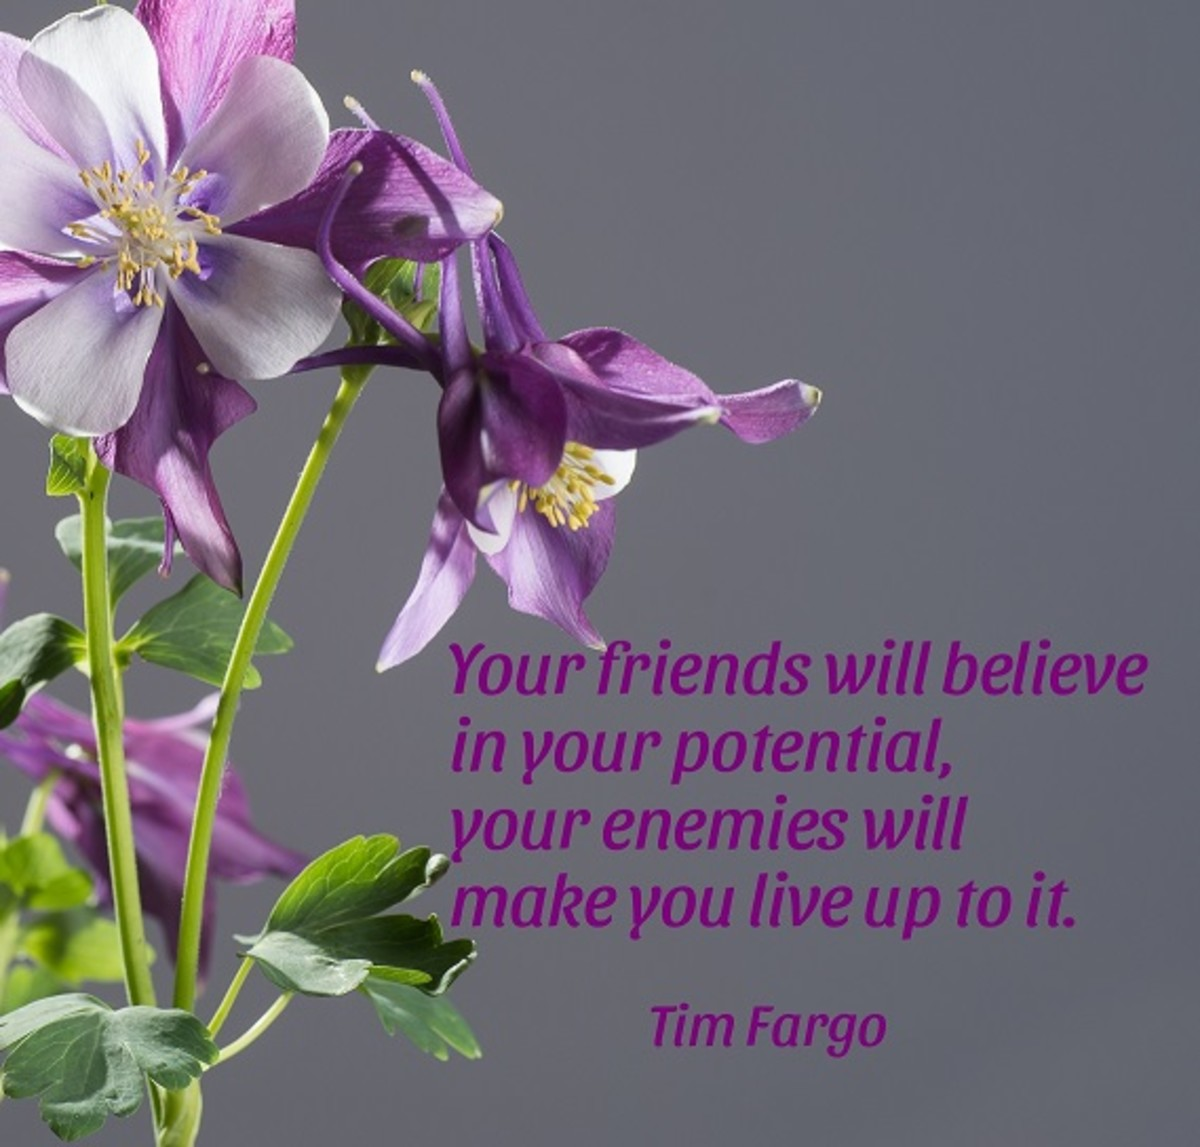 """Your friends will believe in your potential, your enemies will make you live up to it."" —Tim Fargo"